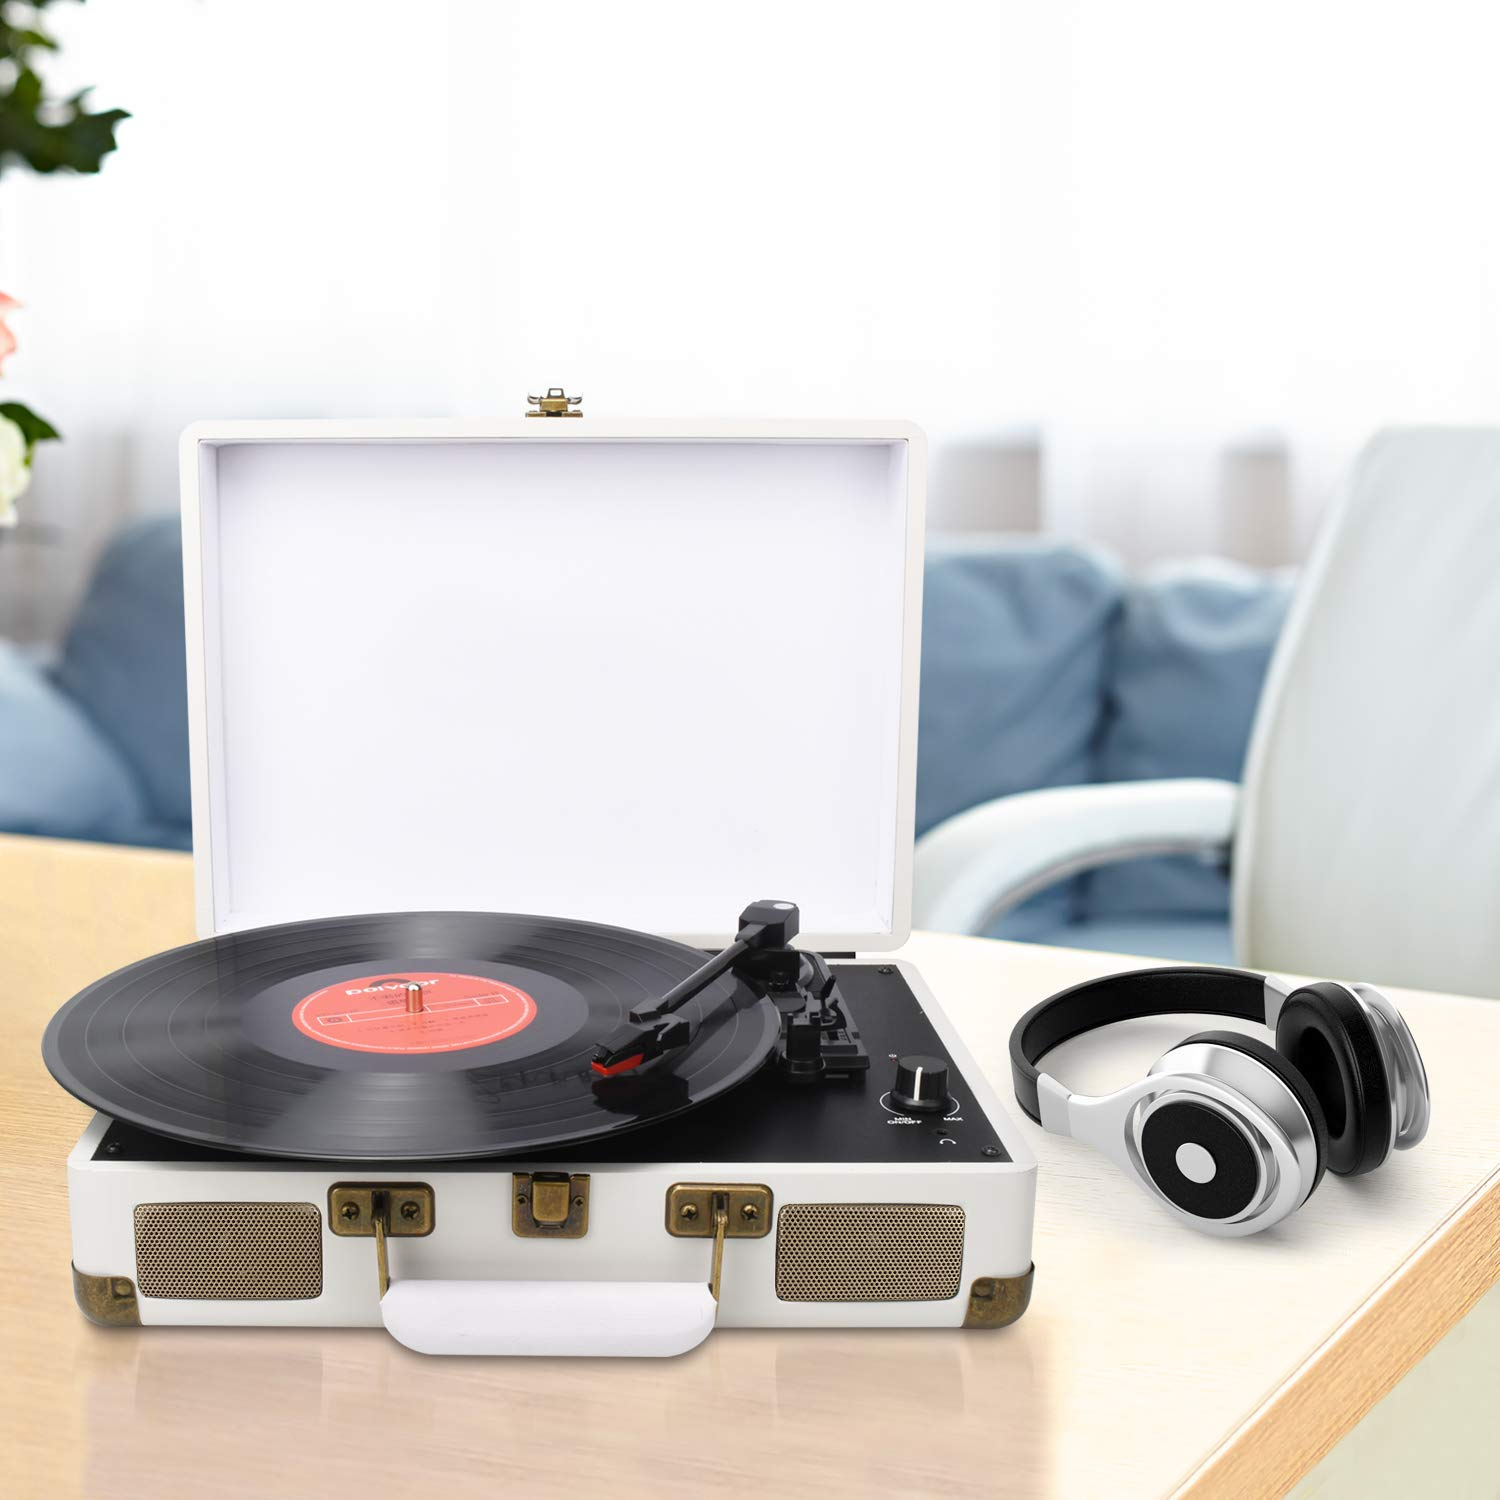 DIGITNOW! Turntable Record Player 3speeds with Built-in Stereo Speakers, Supports USB / RCA Output / Headphone Jack / MP3 / Mobile Phones Music Playback,Suitcase Design by DIGITNOW (Image #6)